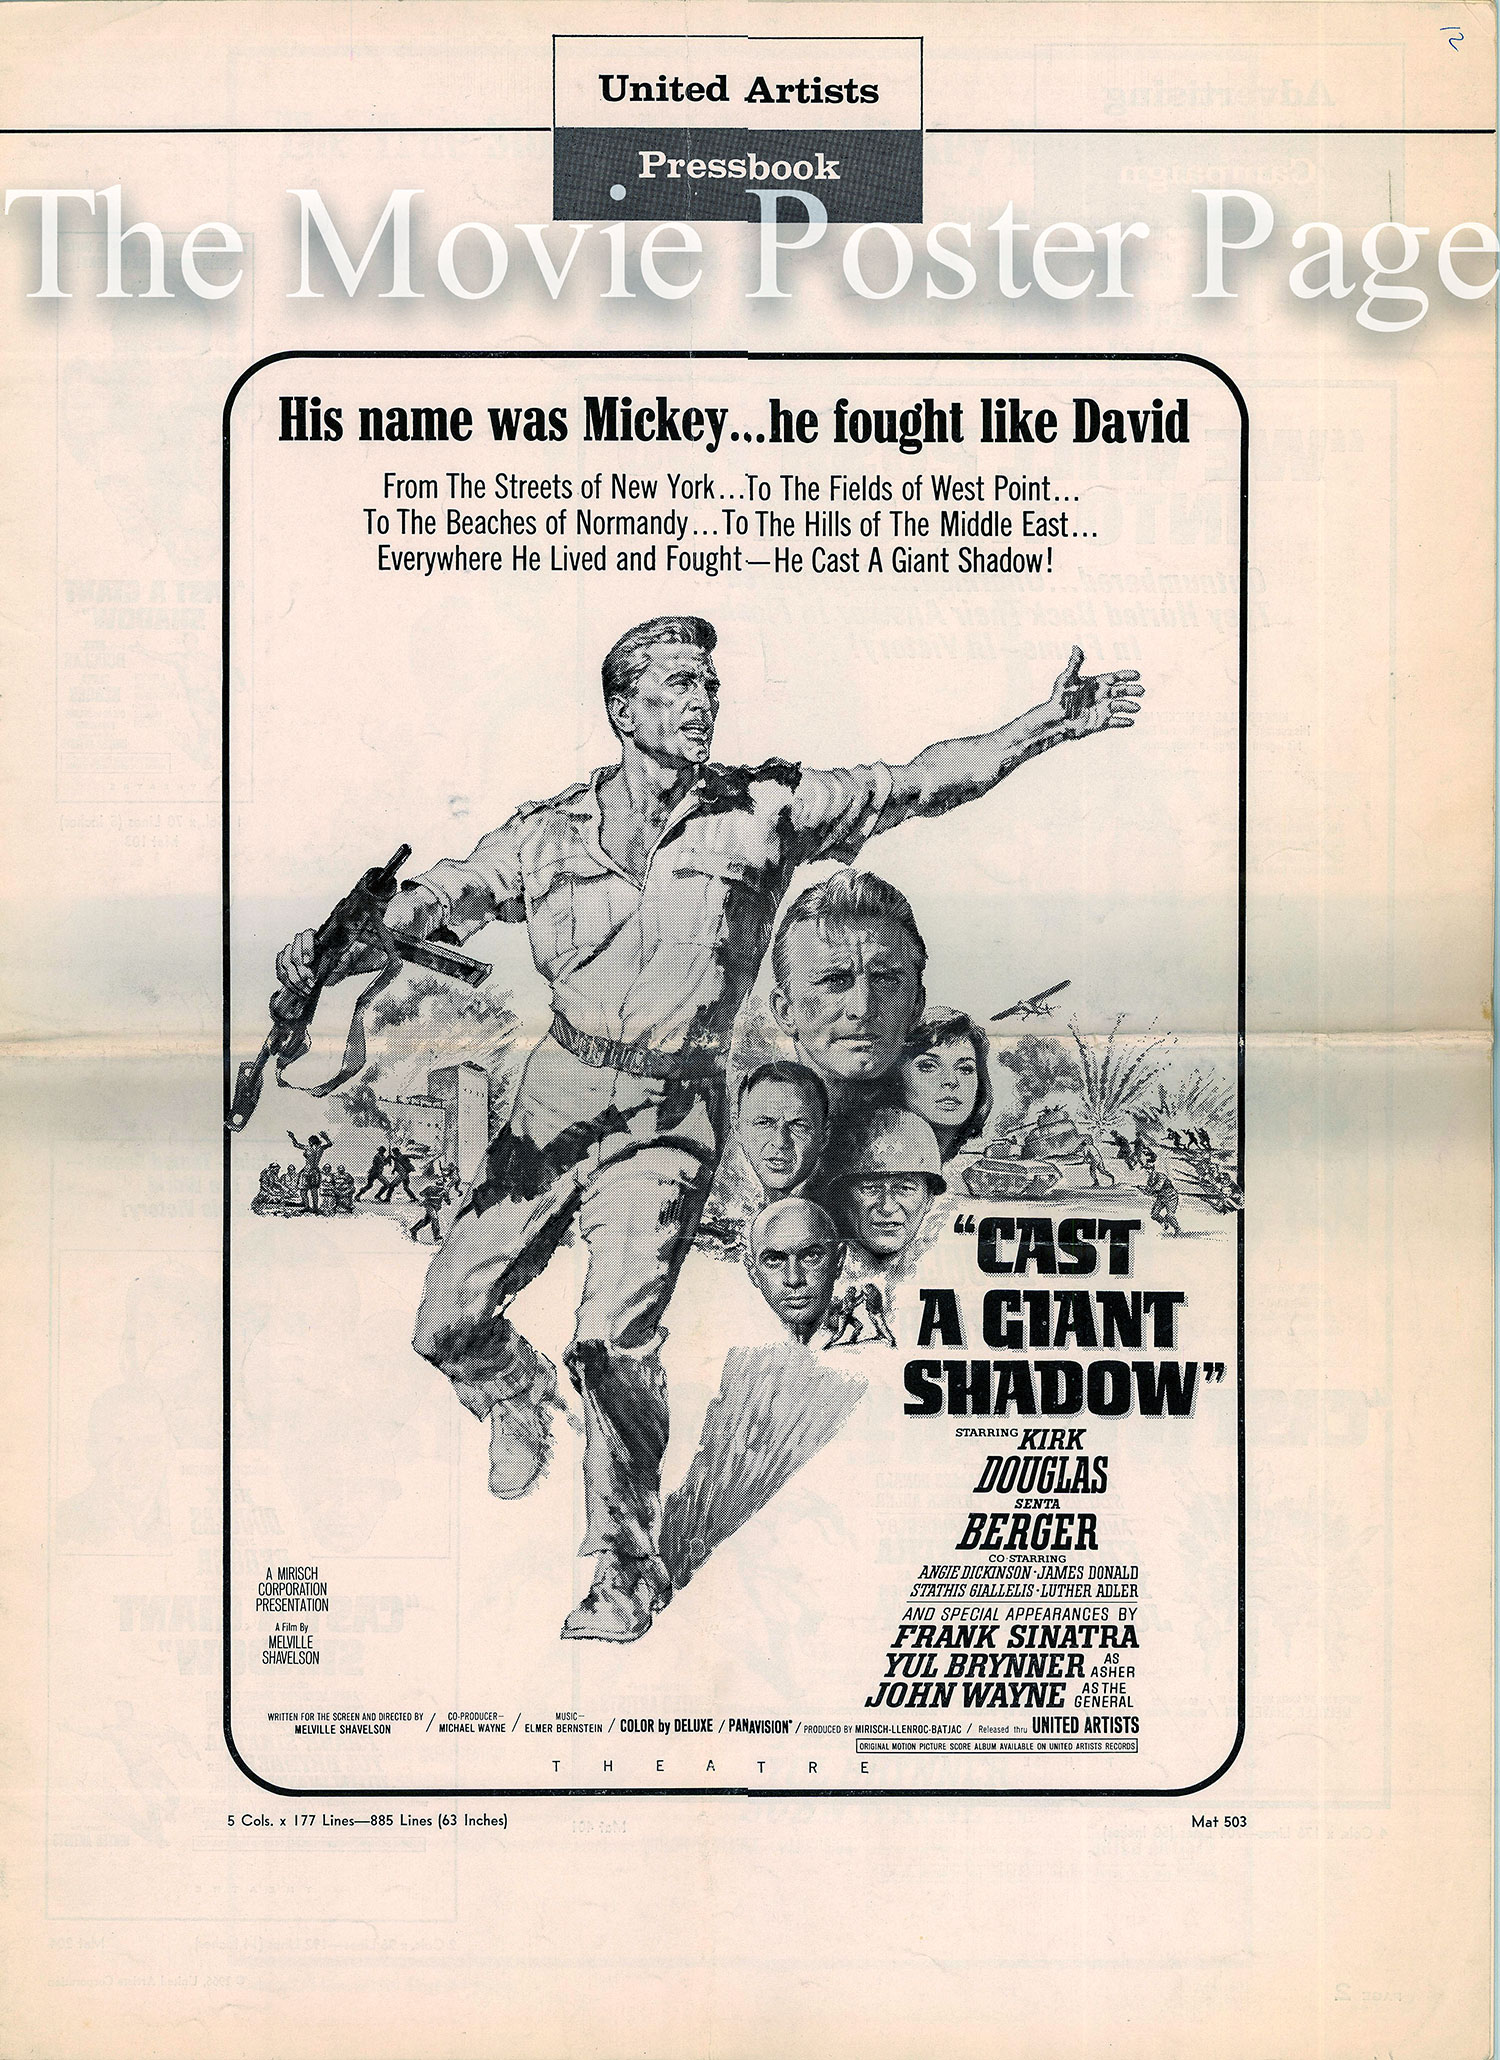 Pictured is a US promotional press book for the 1966 Melville Shavelson film Cast a Giant Shadow starring Kirk Douglas and John Wayne.